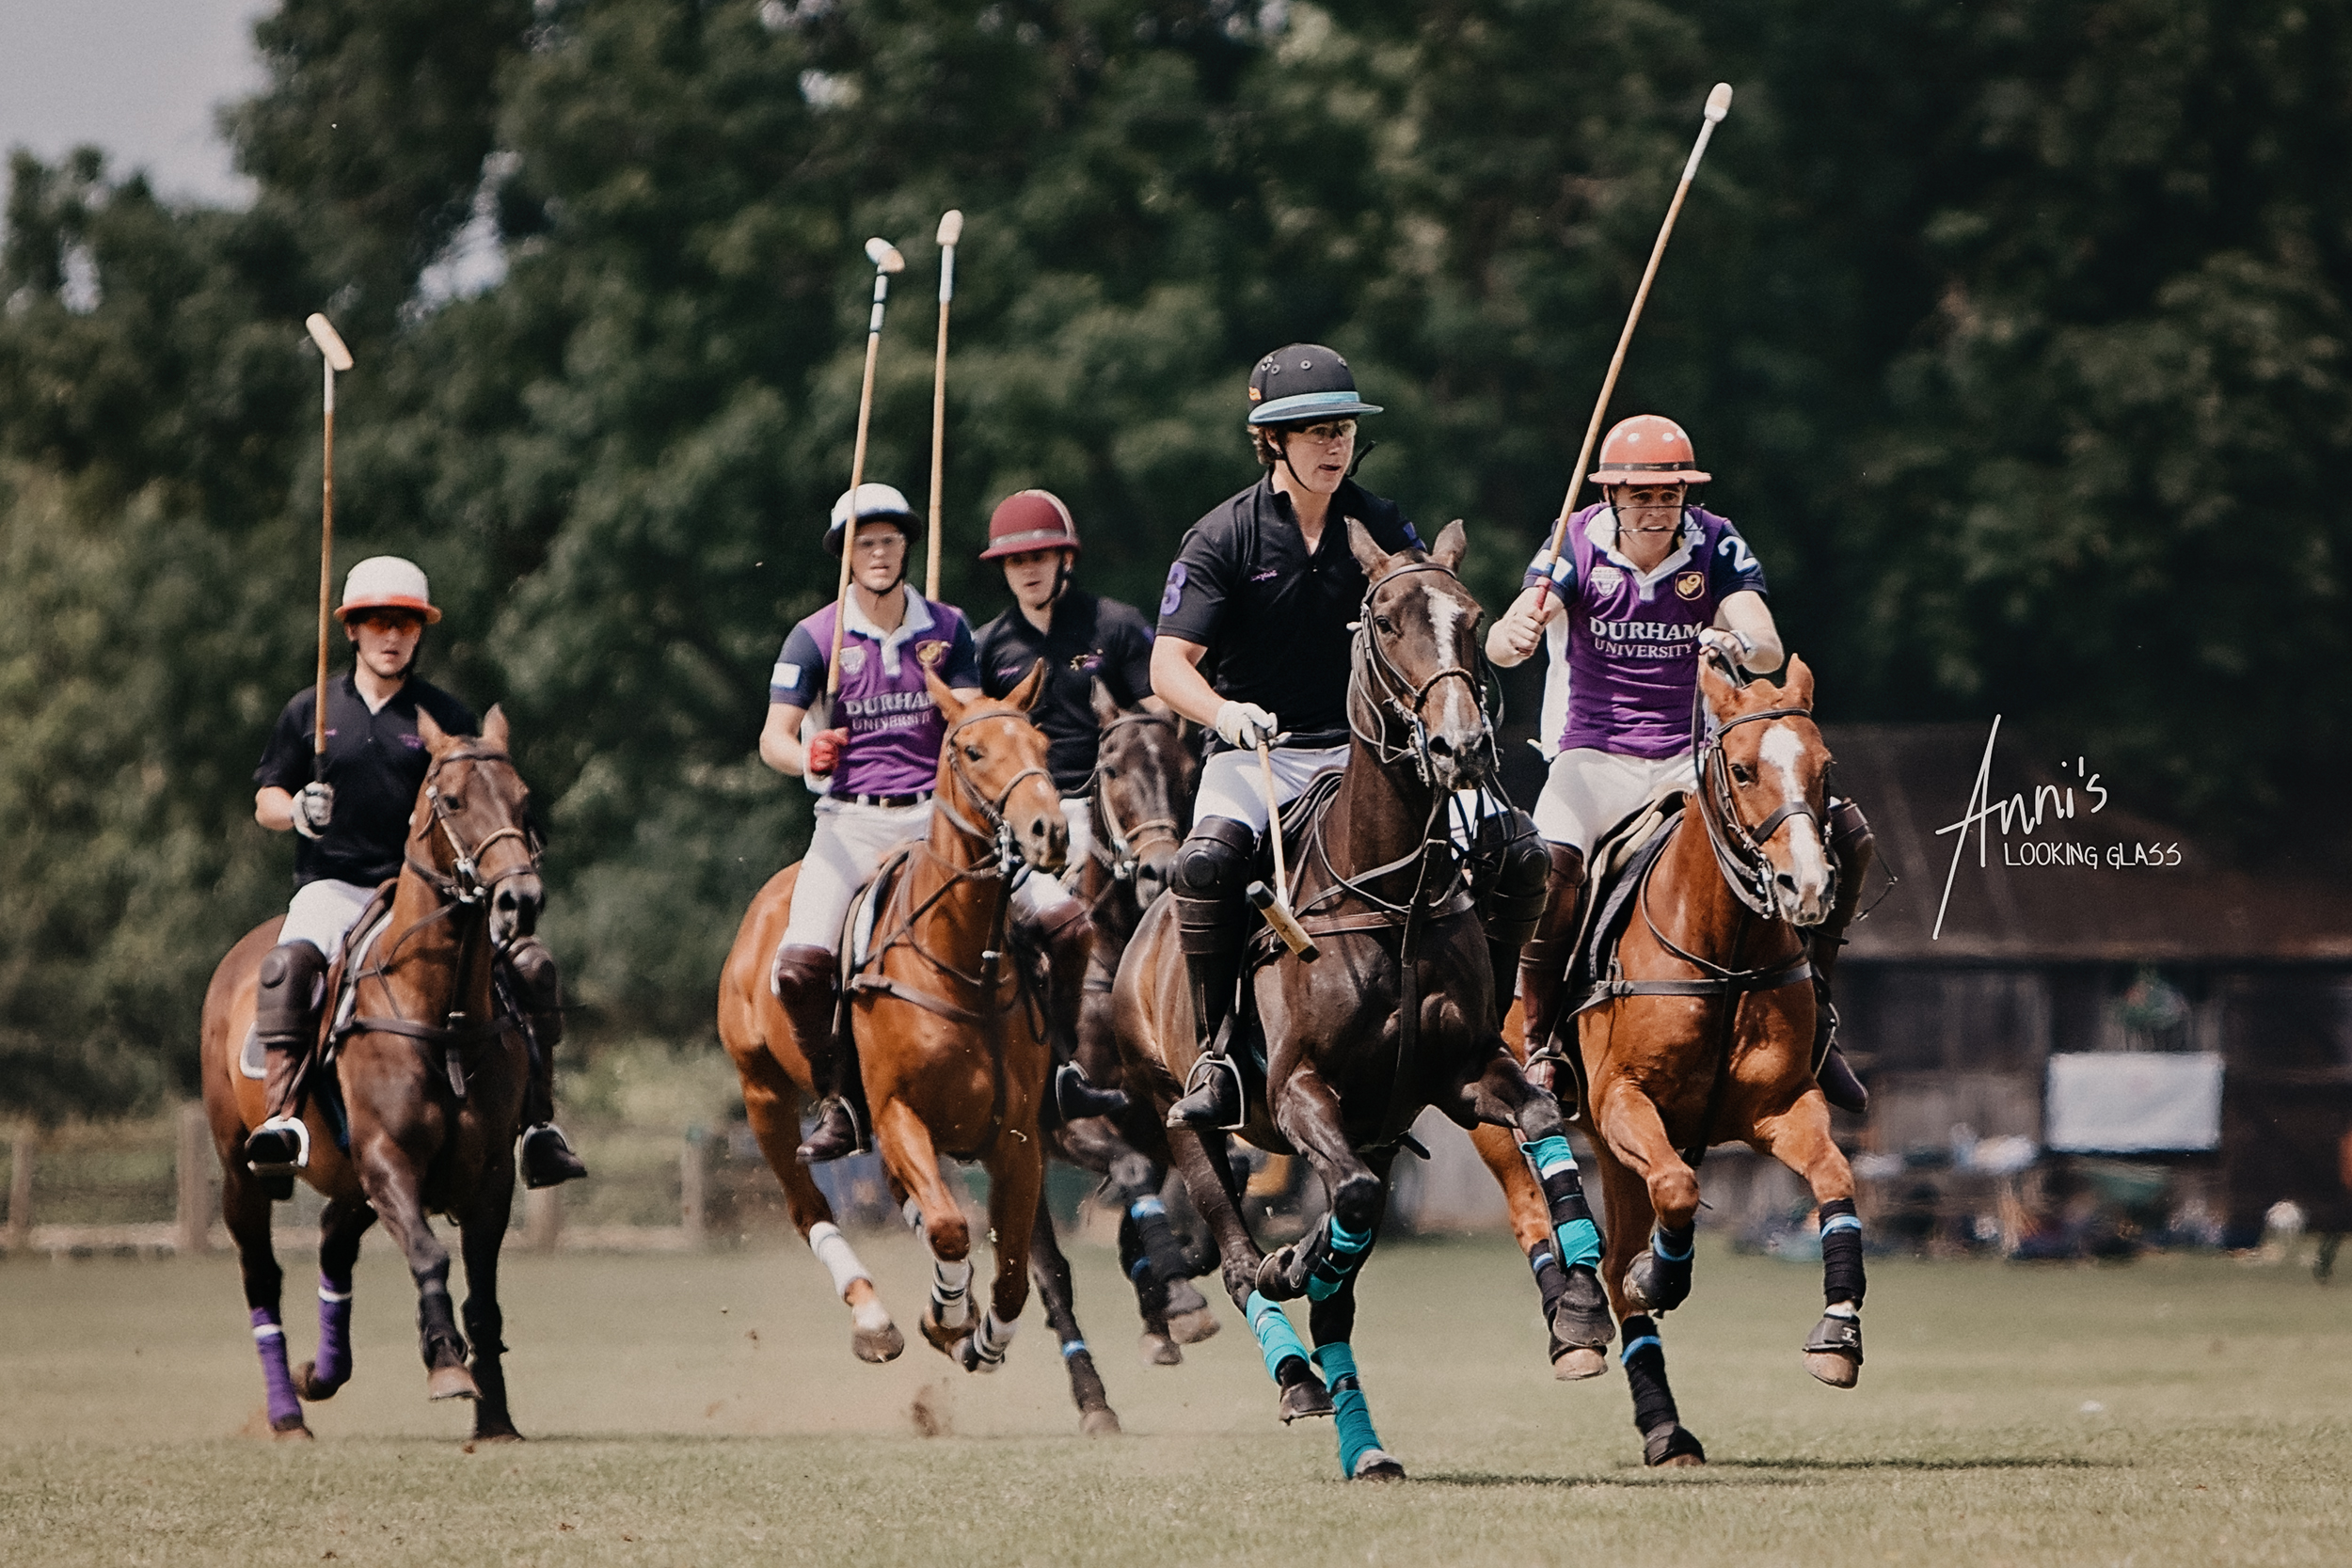 polo-equine-sports-photography-leicestershire.jpg